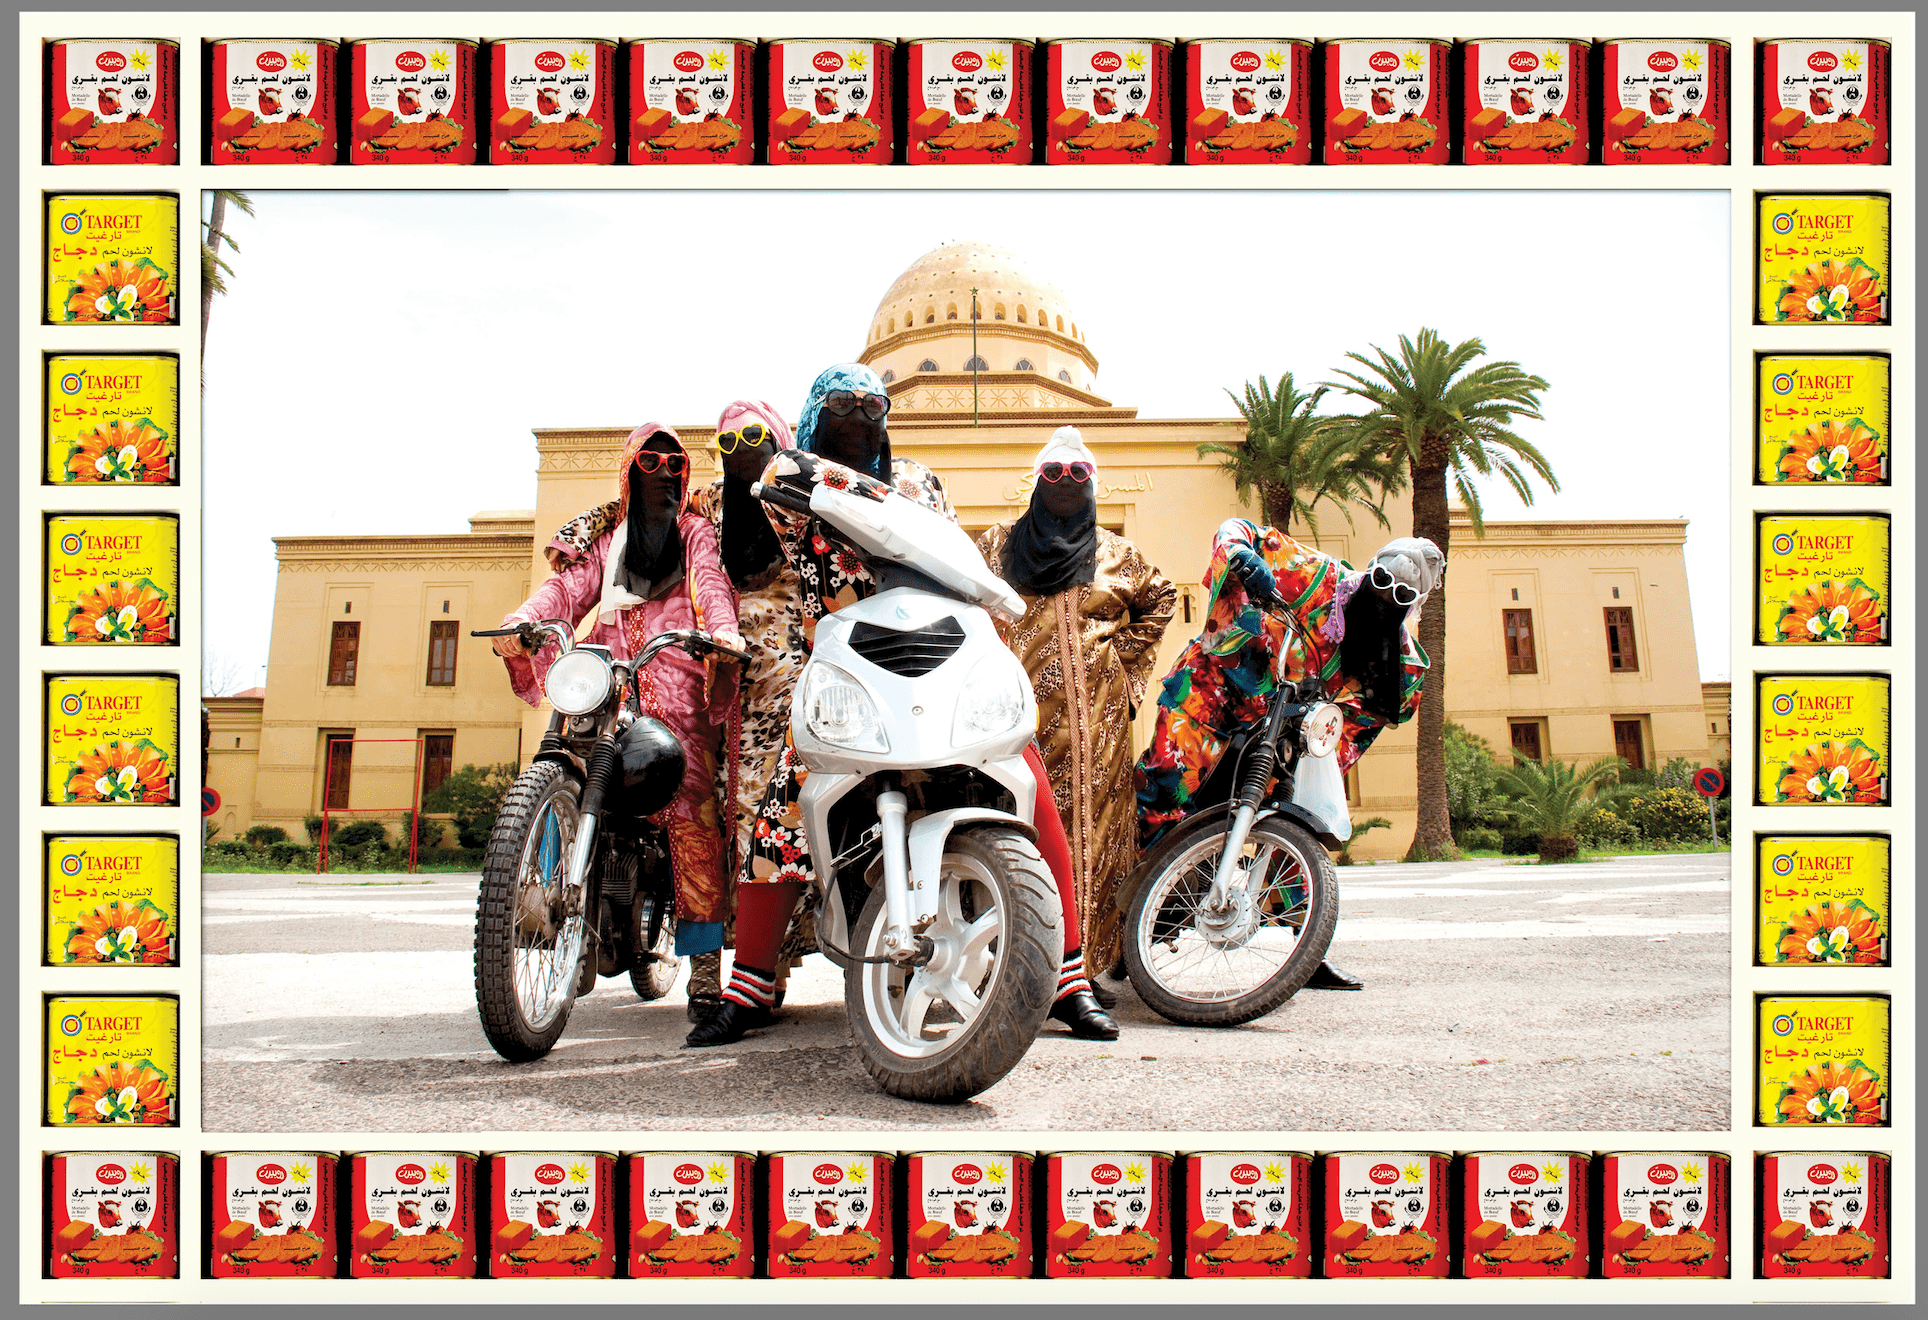 Hassan Hajjaj, Kesh Angels, 2010/1431, Photographic print. Courtesy the artist and Vigo Gallery